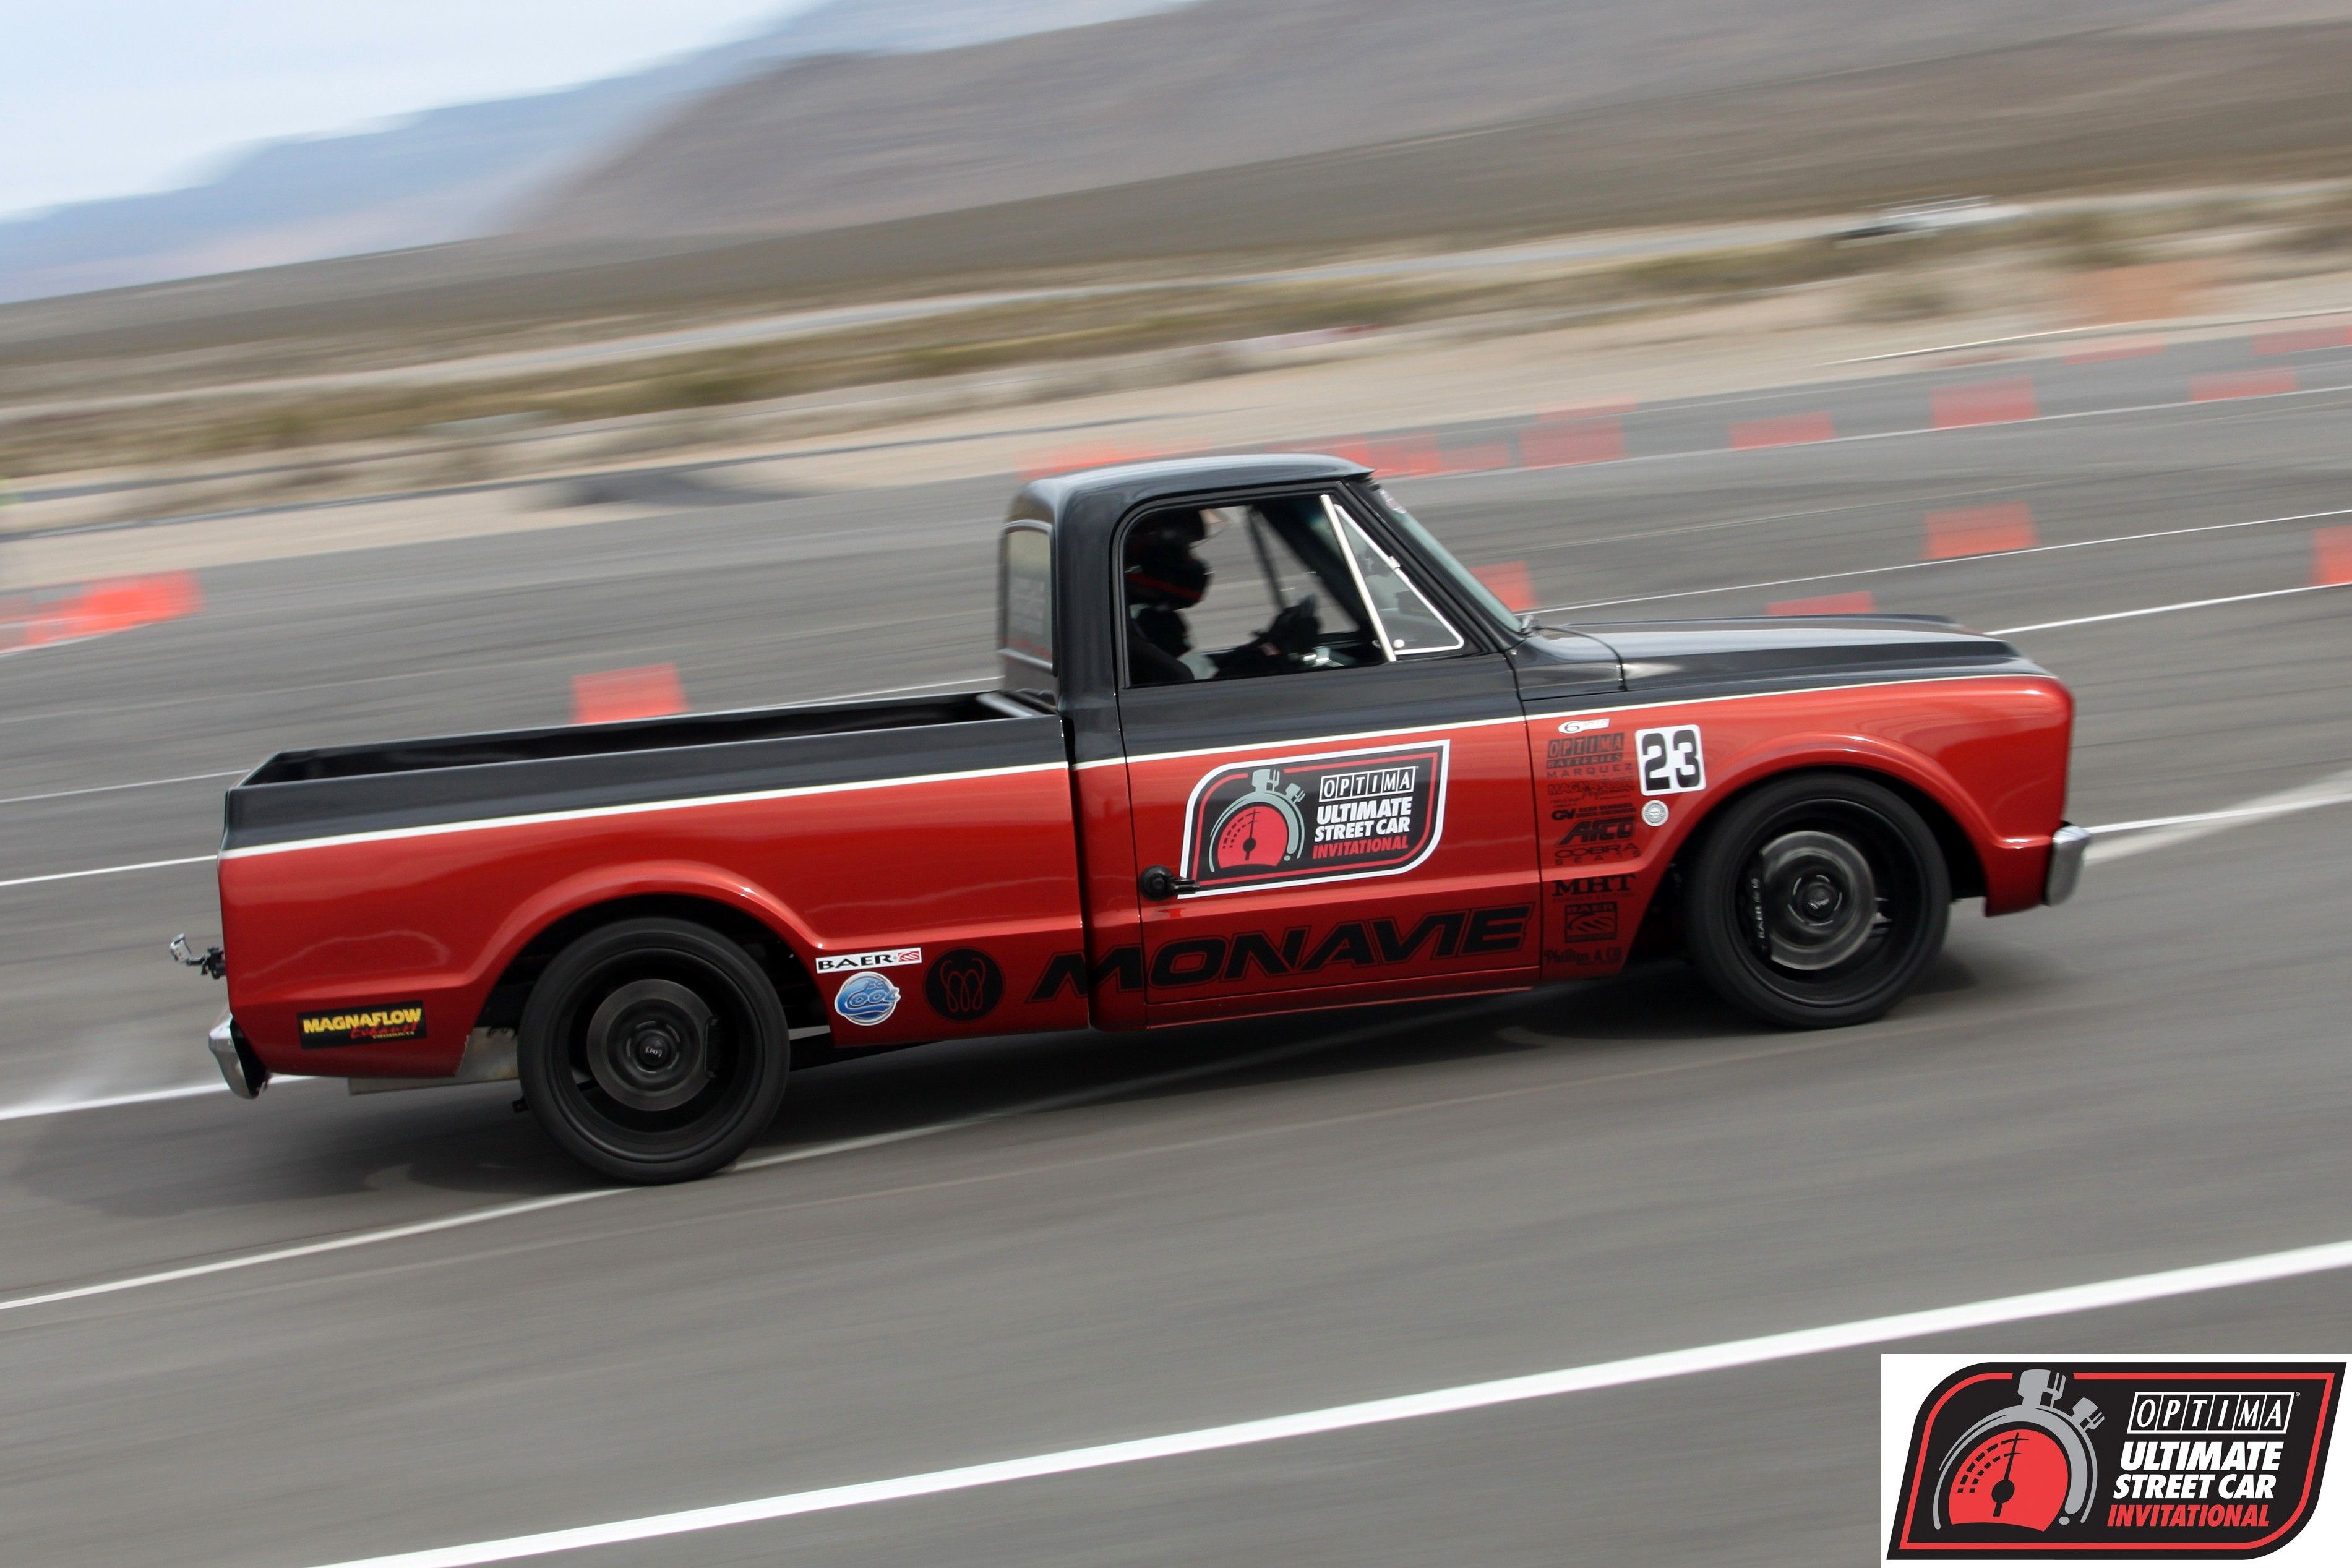 Rob Phillips Competed In The 2010 Ousci In His 1969 Chevrolet Pickup Pro Touring Cars Chevrolet Pickup 72 Chevy Truck